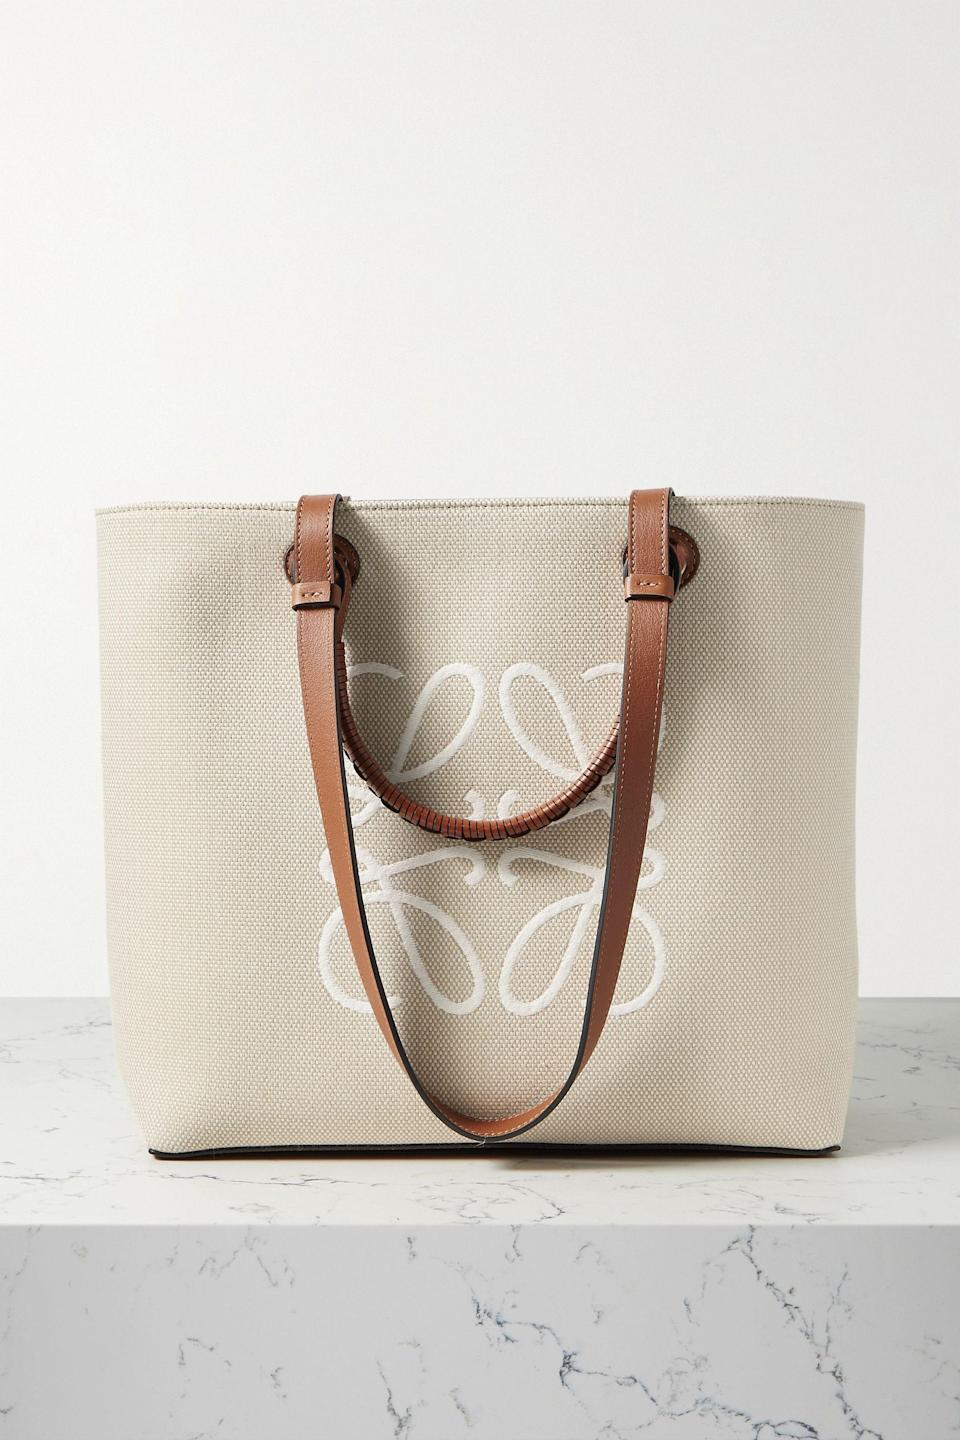 """<p><strong>Loewe</strong></p><p>net-a-porter.com</p><p><strong>$1850.00</strong></p><p><a href=""""https://go.redirectingat.com?id=74968X1596630&url=https%3A%2F%2Fwww.net-a-porter.com%2Fen-us%2Fshop%2Fproduct%2Floewe%2Fanagram-medium-leather-trimmed-embroidered-canvas-tote%2F1325354&sref=https%3A%2F%2Fwww.harpersbazaar.com%2Ffashion%2Ftrends%2Fg36053973%2Fgift-ideas-for-grandma%2F"""" rel=""""nofollow noopener"""" target=""""_blank"""" data-ylk=""""slk:Shop Now"""" class=""""link rapid-noclick-resp"""">Shop Now</a></p><p>Grandmas are notorious for carrying bottomless bags with everything anyone would ever need; it might as well be this chic Loewe leather-trim tote.</p>"""